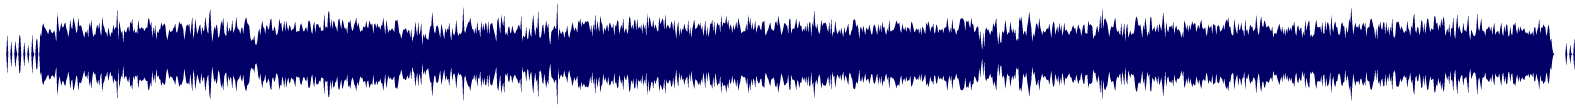 waveform of track #79024